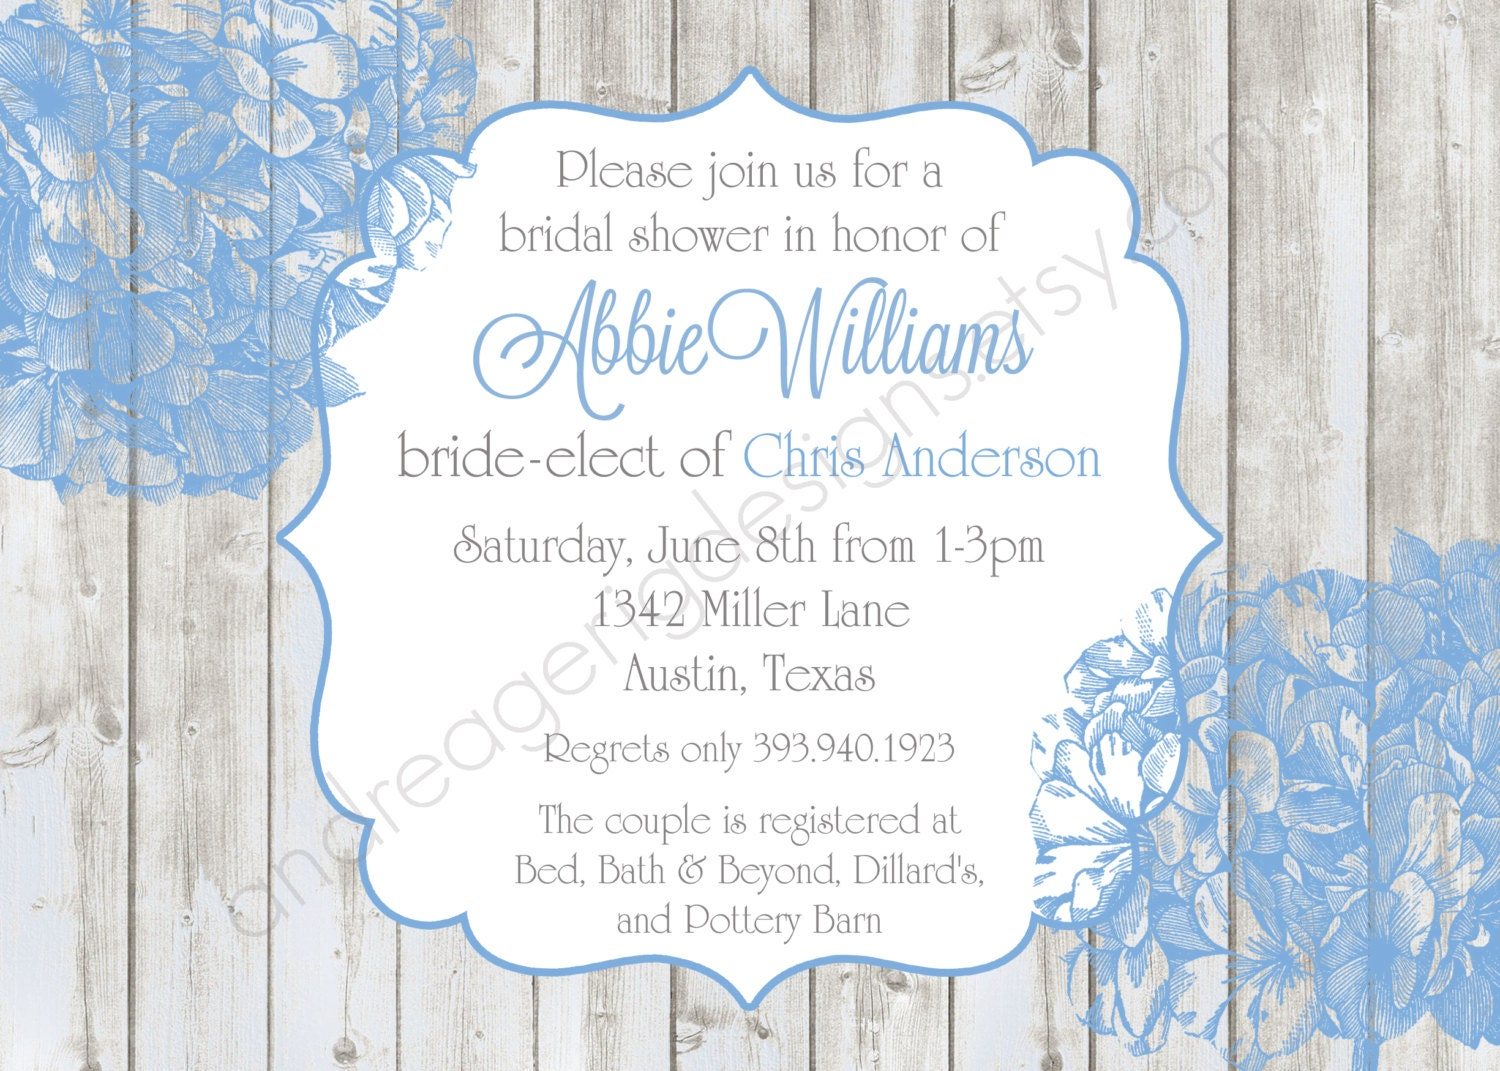 Bridal Shower Invitations Templates Microsoft Word Bridal shower ...